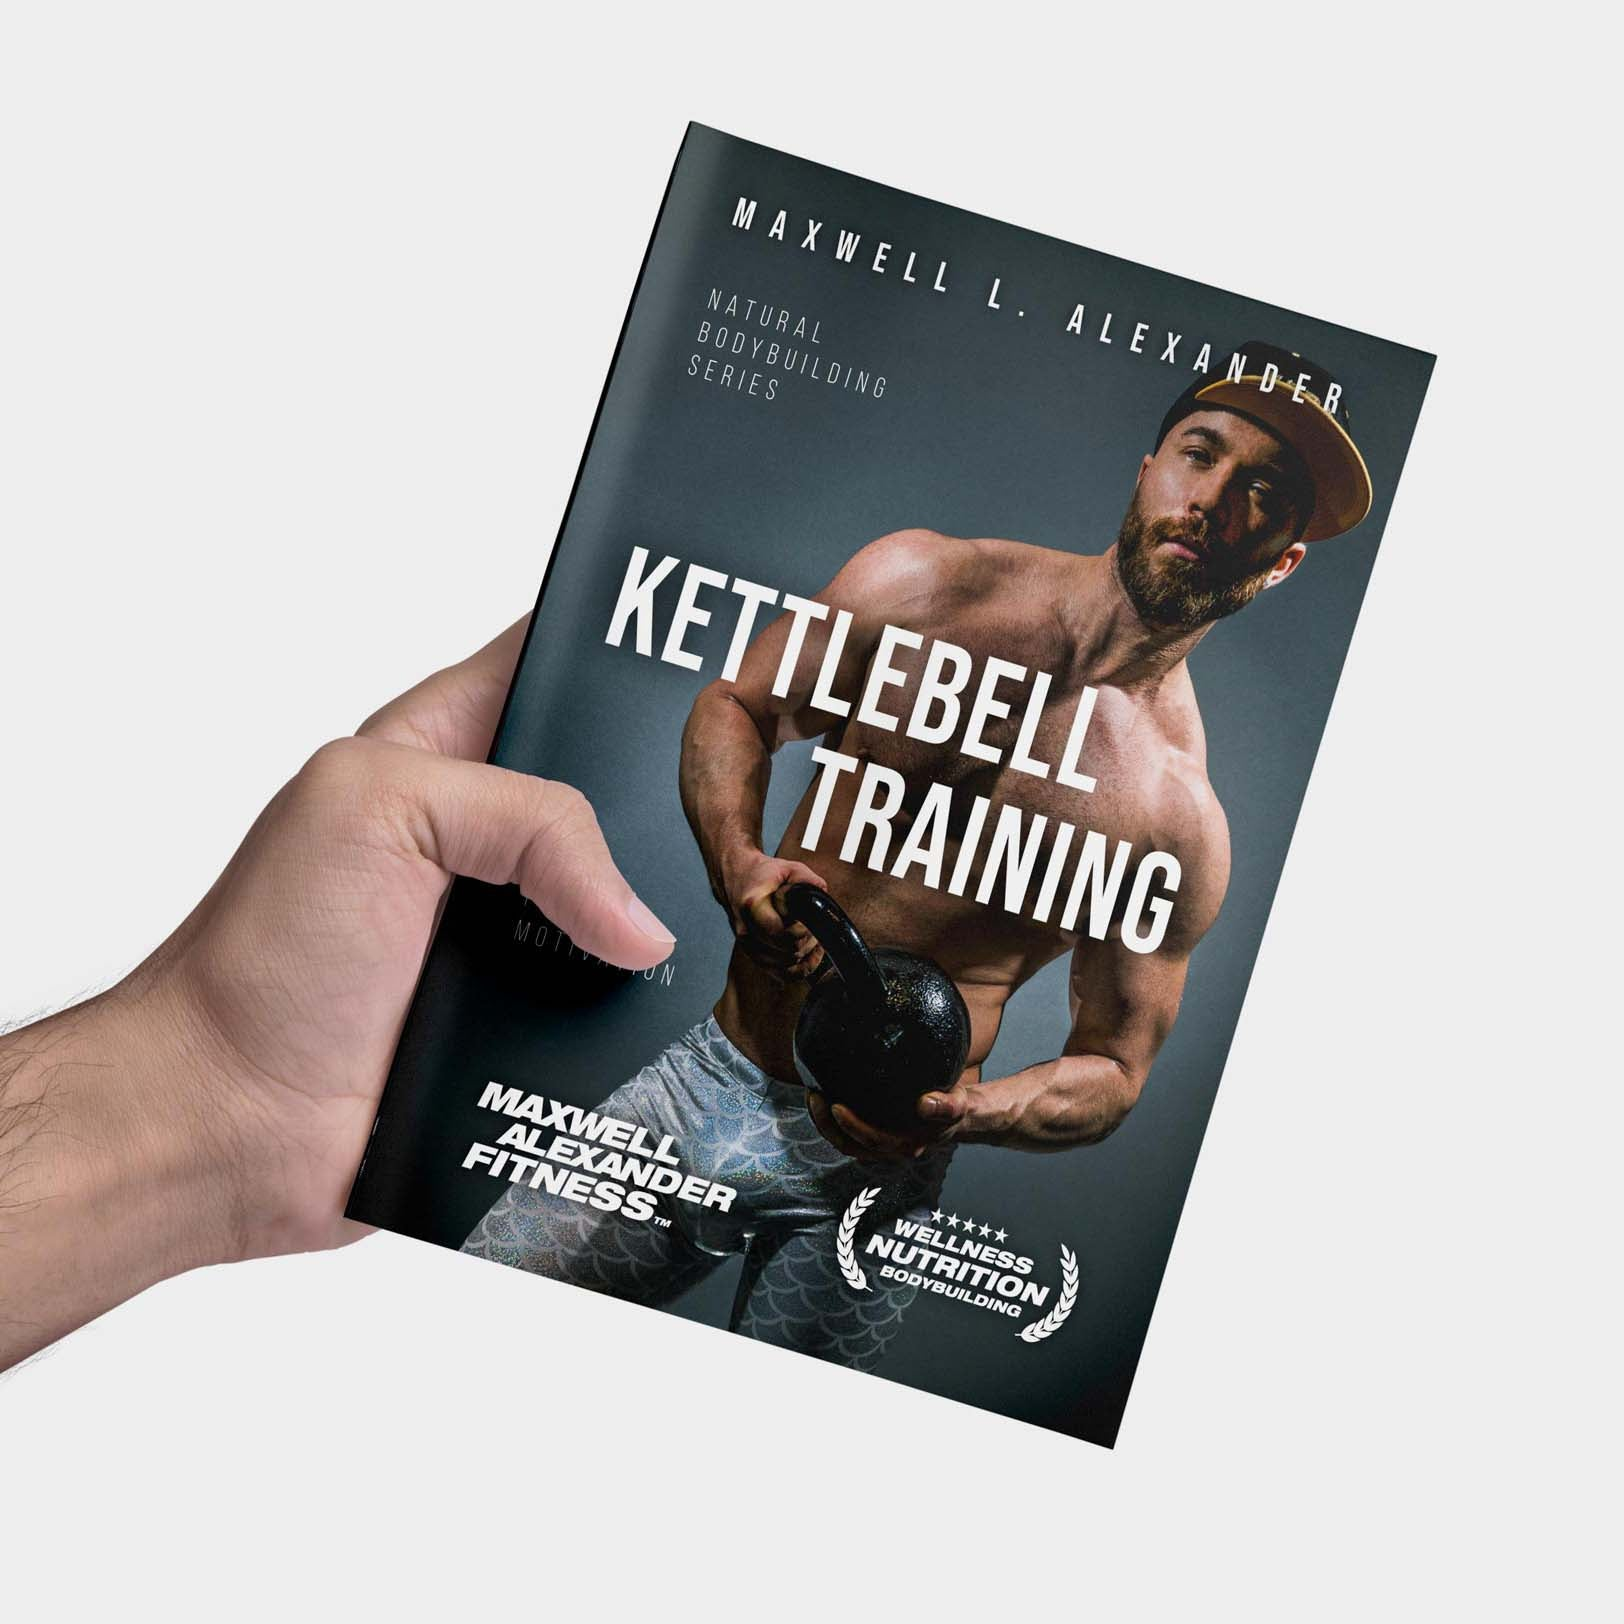 Kettlebell Training with Coach Maxwell Alexander – Comprehensive Guide